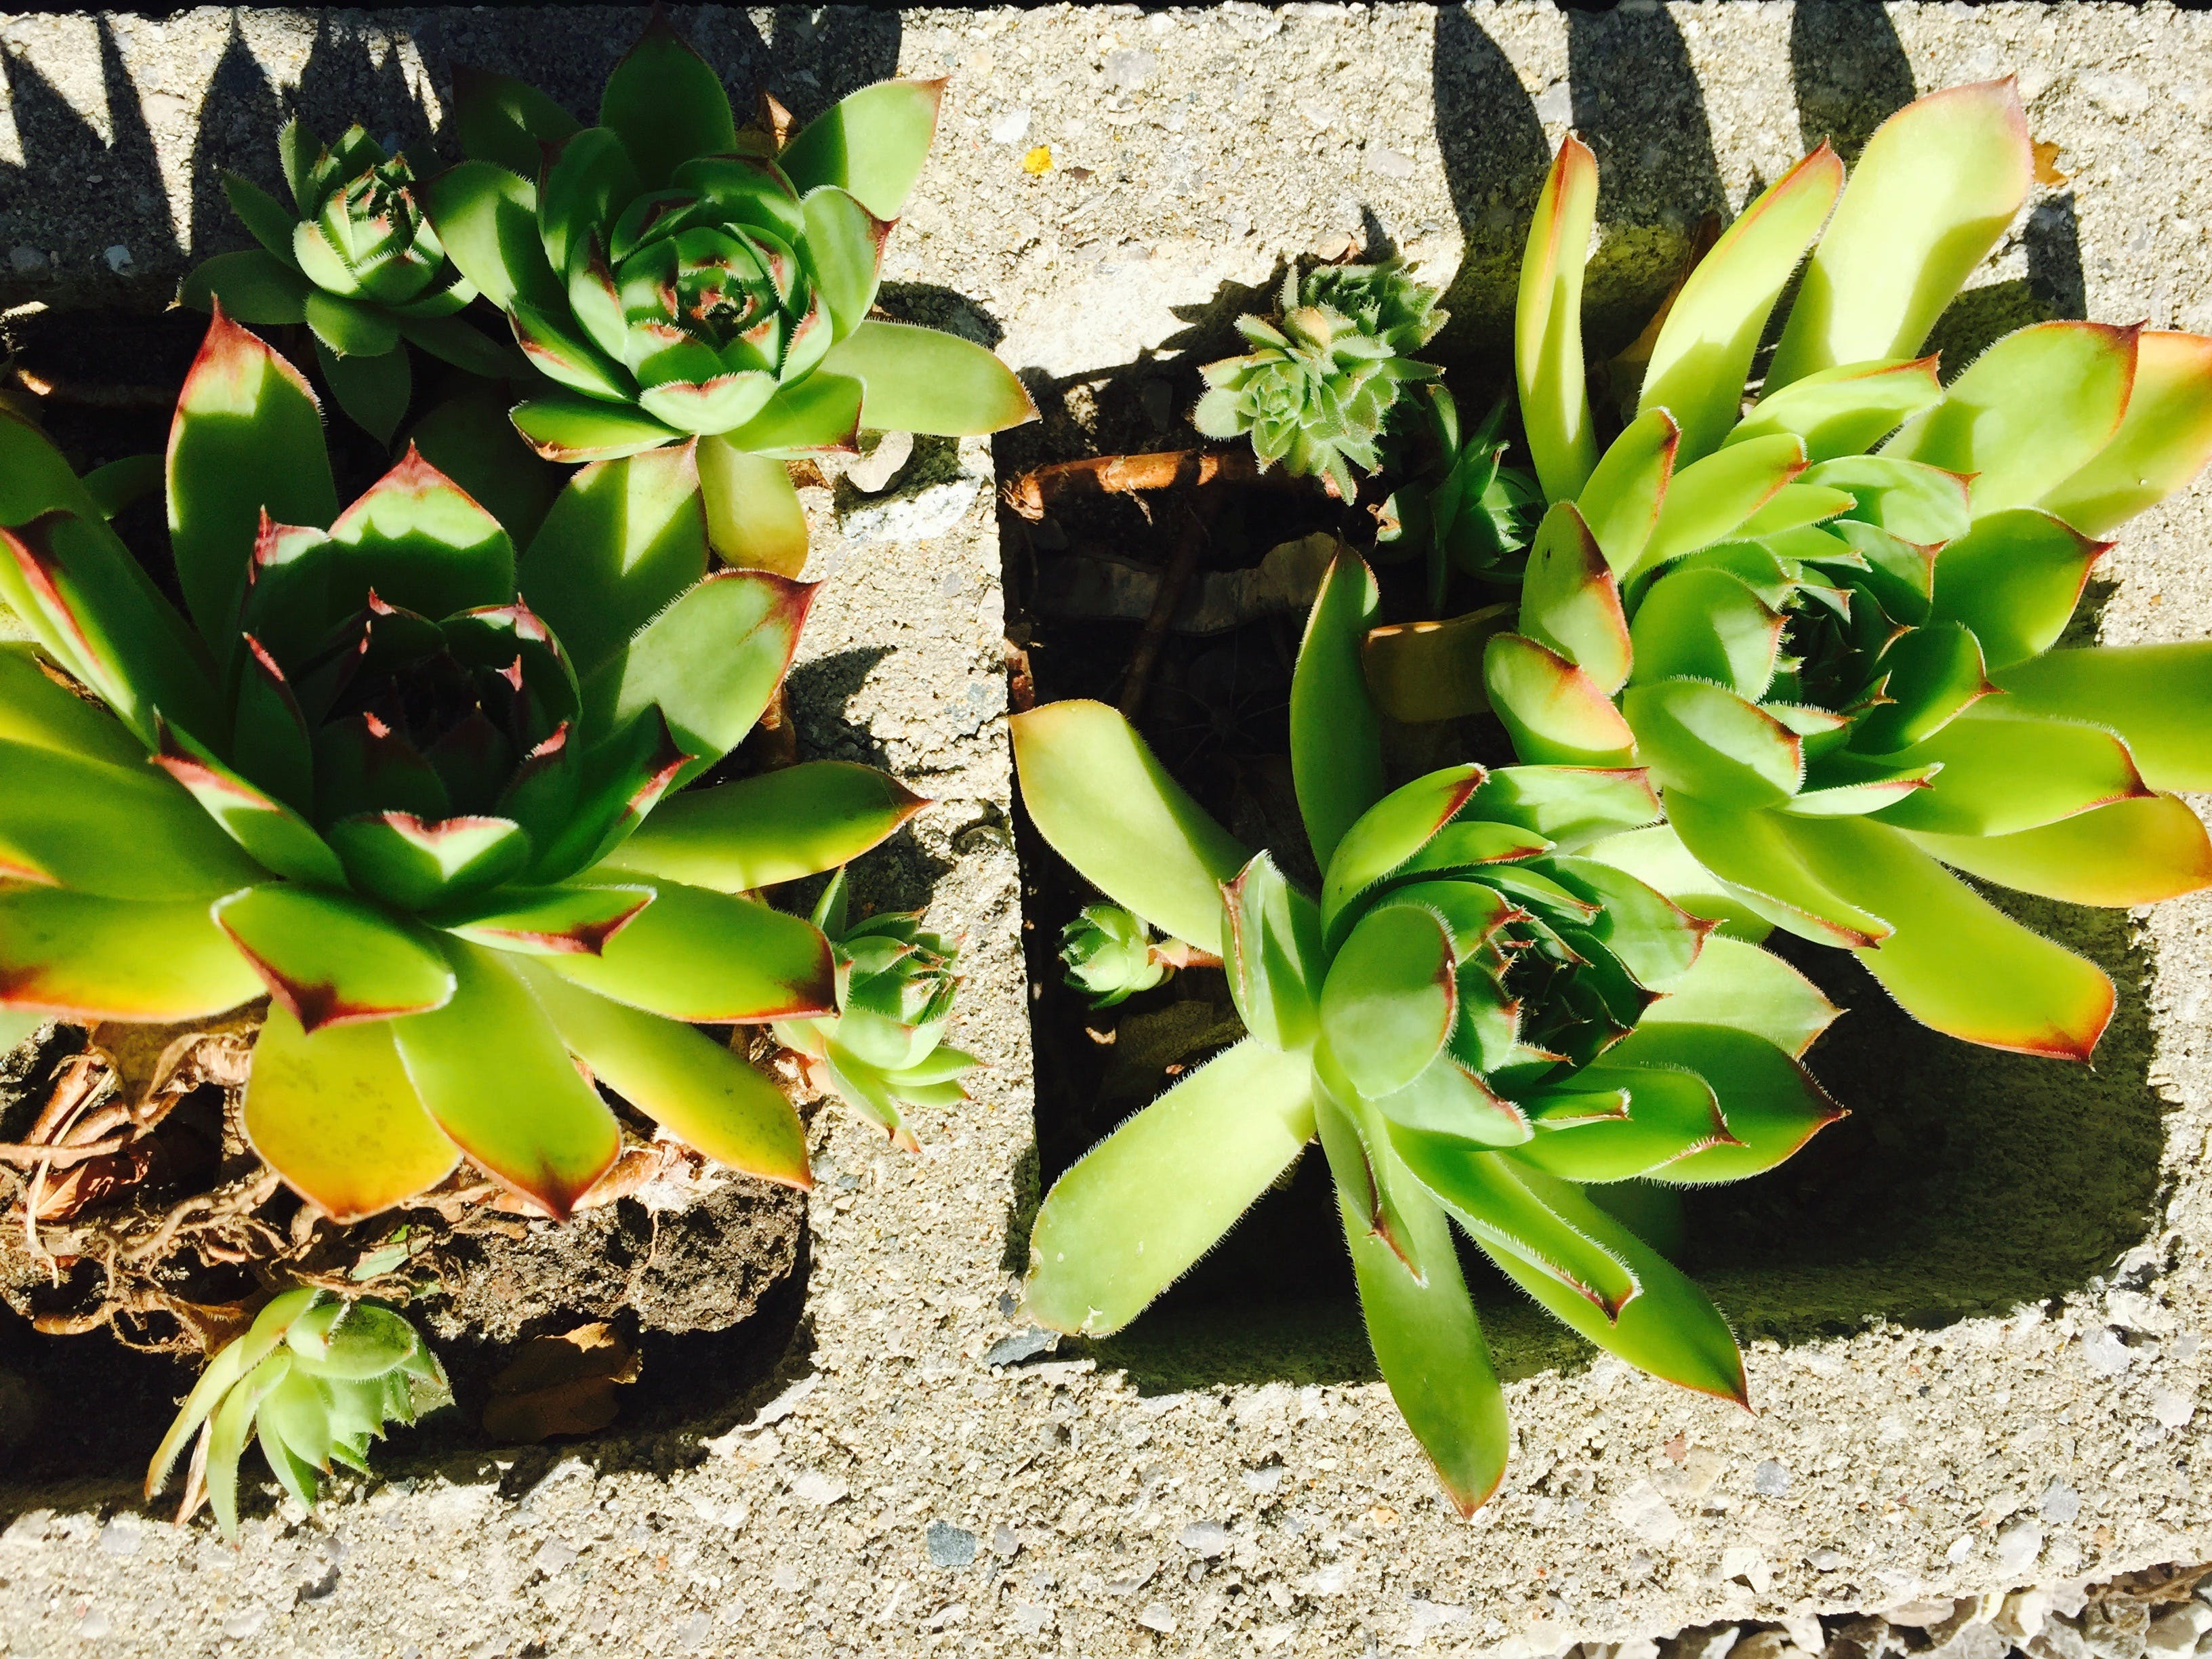 Succulent garden by parking area.